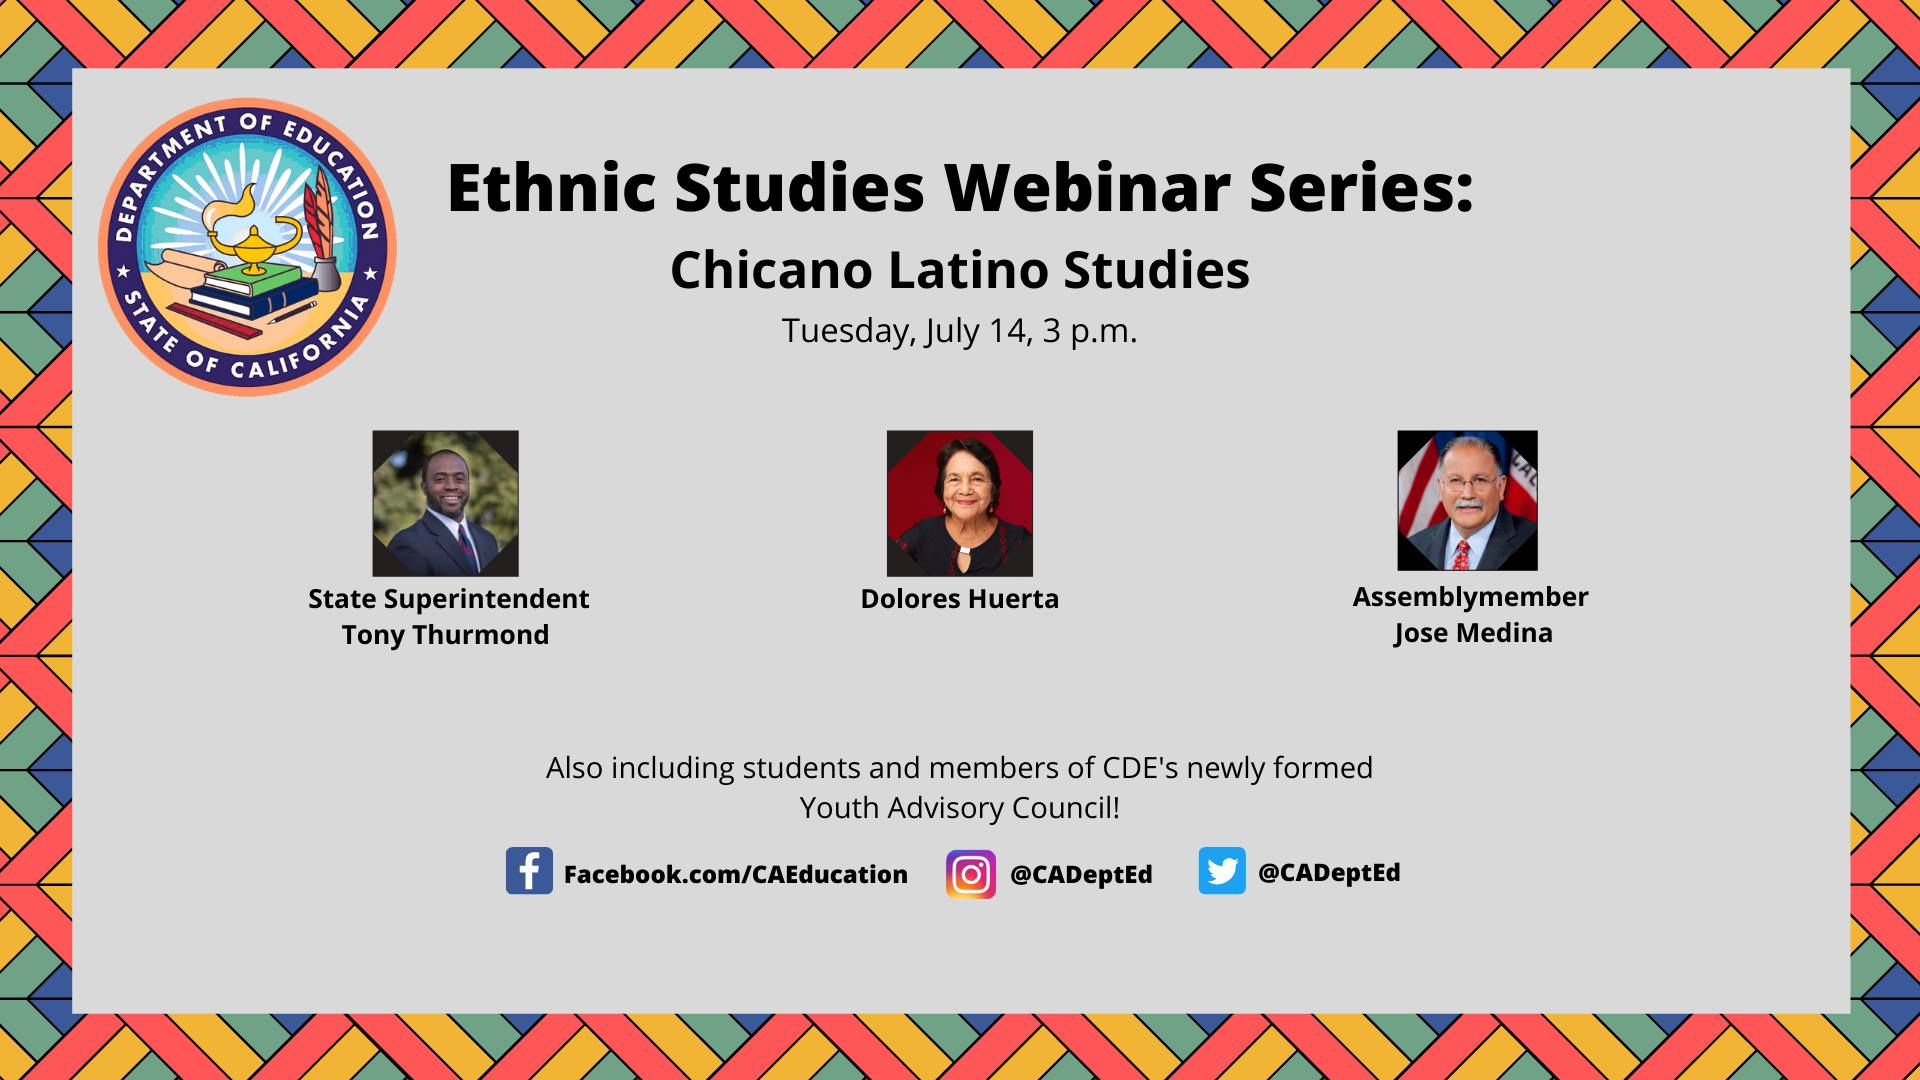 Ethnic Studies Webinar Series: Chicano Latino Studies